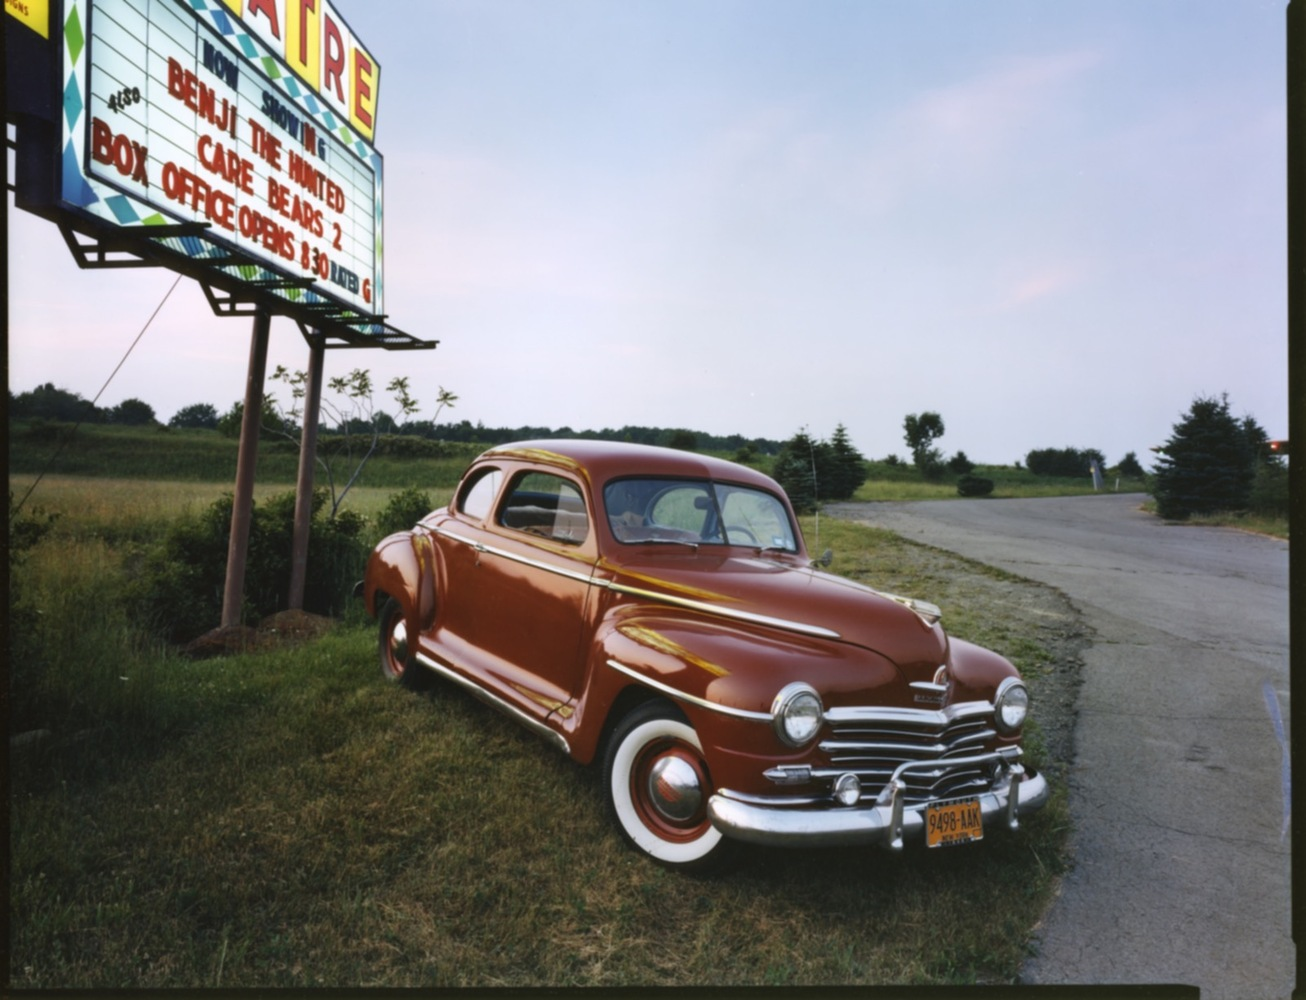 1948 Plymouth Special Deluxe Coupe, Drive-in Theater near Binghamton, NY, c. 1987